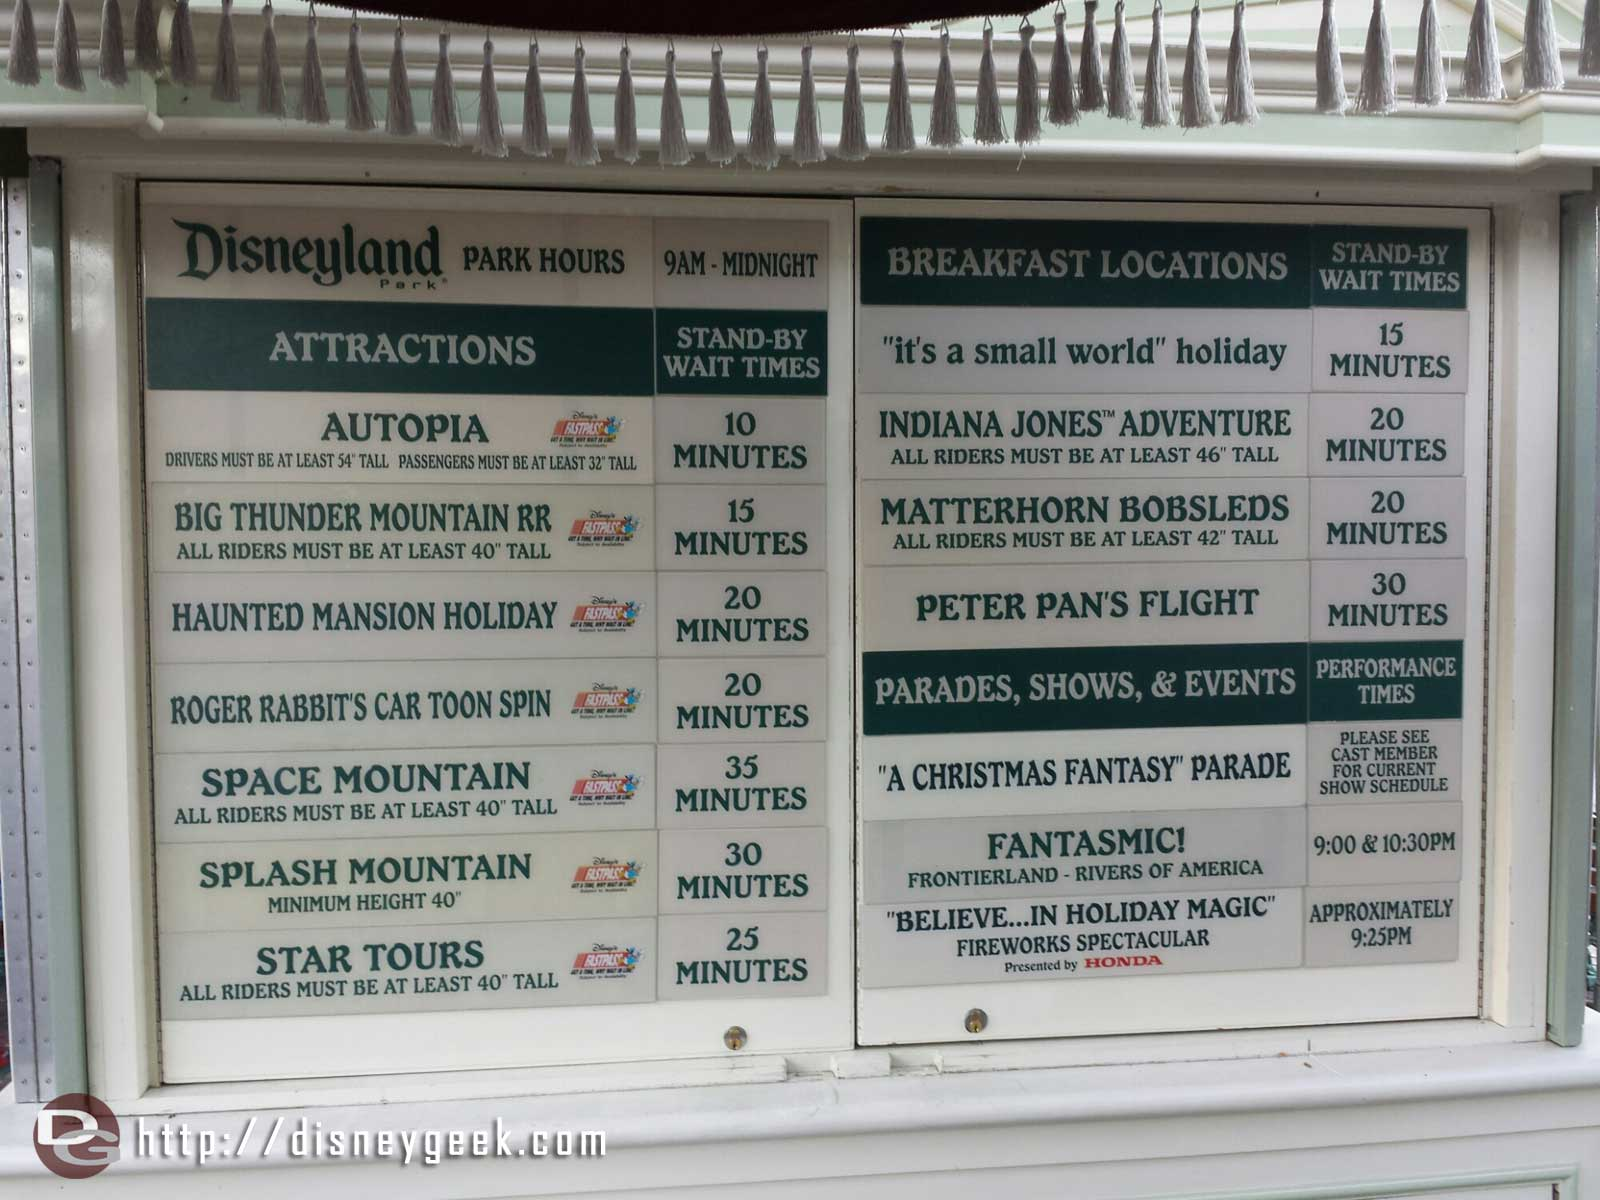 #Disneyland waits as of 4:23pm